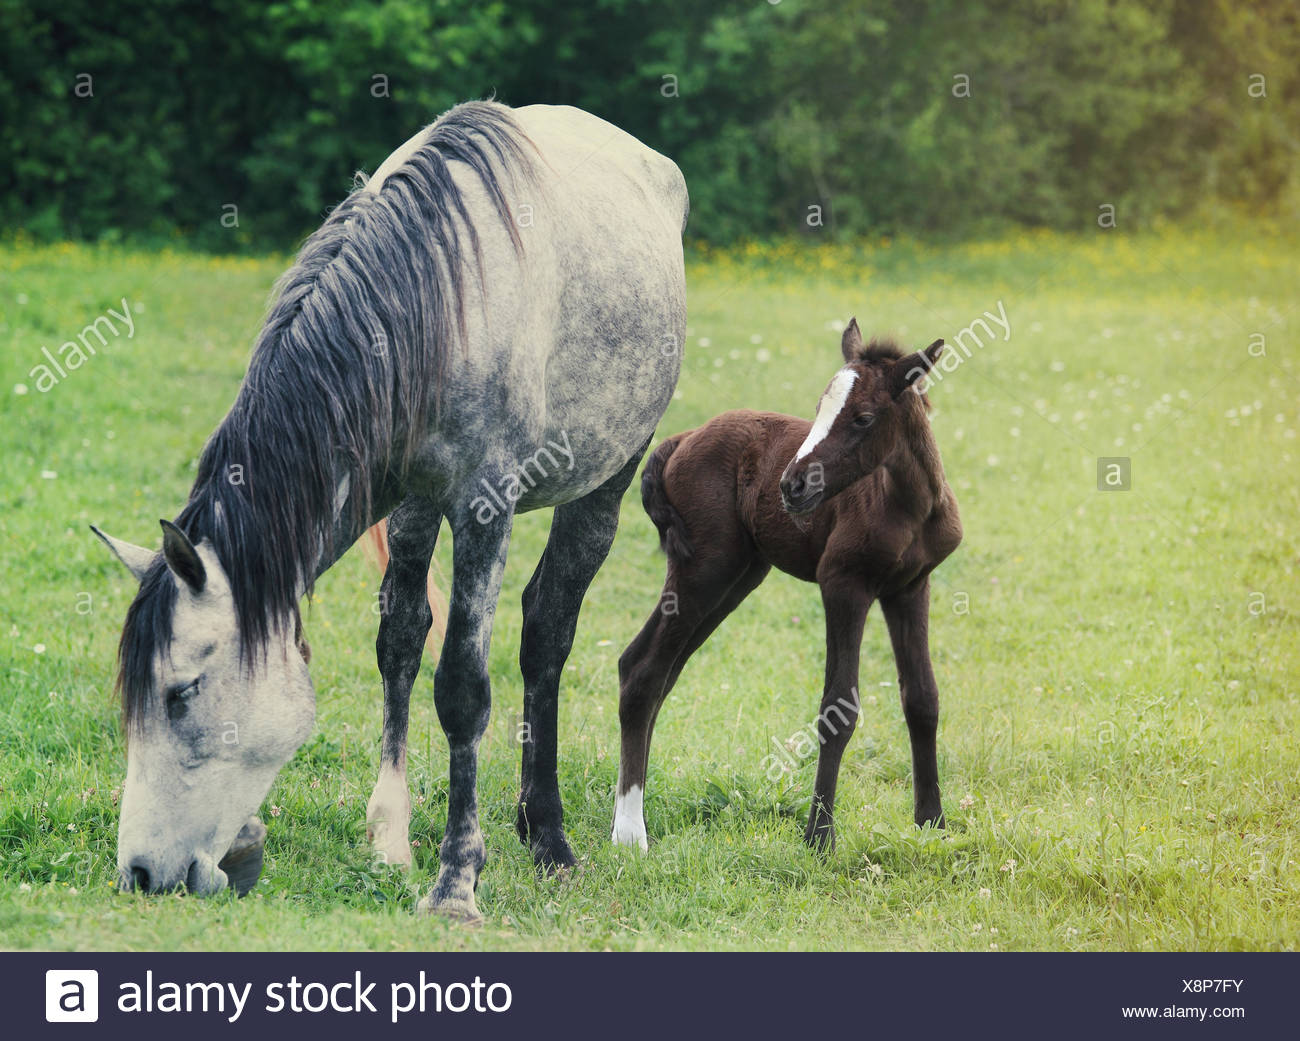 Newborn Baby Horse With Mother On The Green Grass Stock Photo Alamy